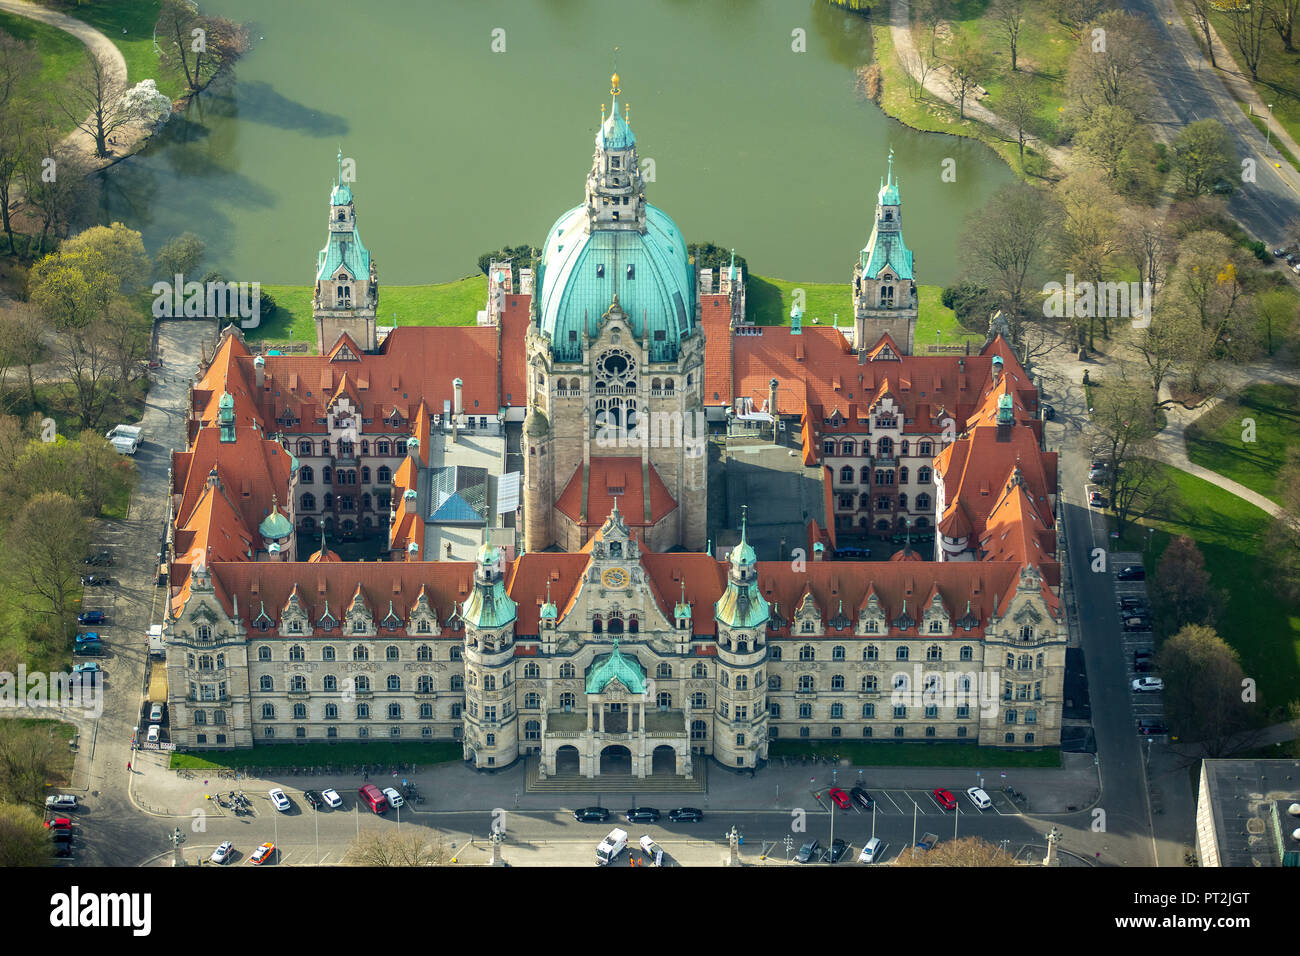 New Town Hall, Hanover's landmark, Wilhelmine, castle-like magnificent building in eclectic style, city administration, town hall cupola, Hannover, state capital, Lower Saxony, Germany - Stock Image